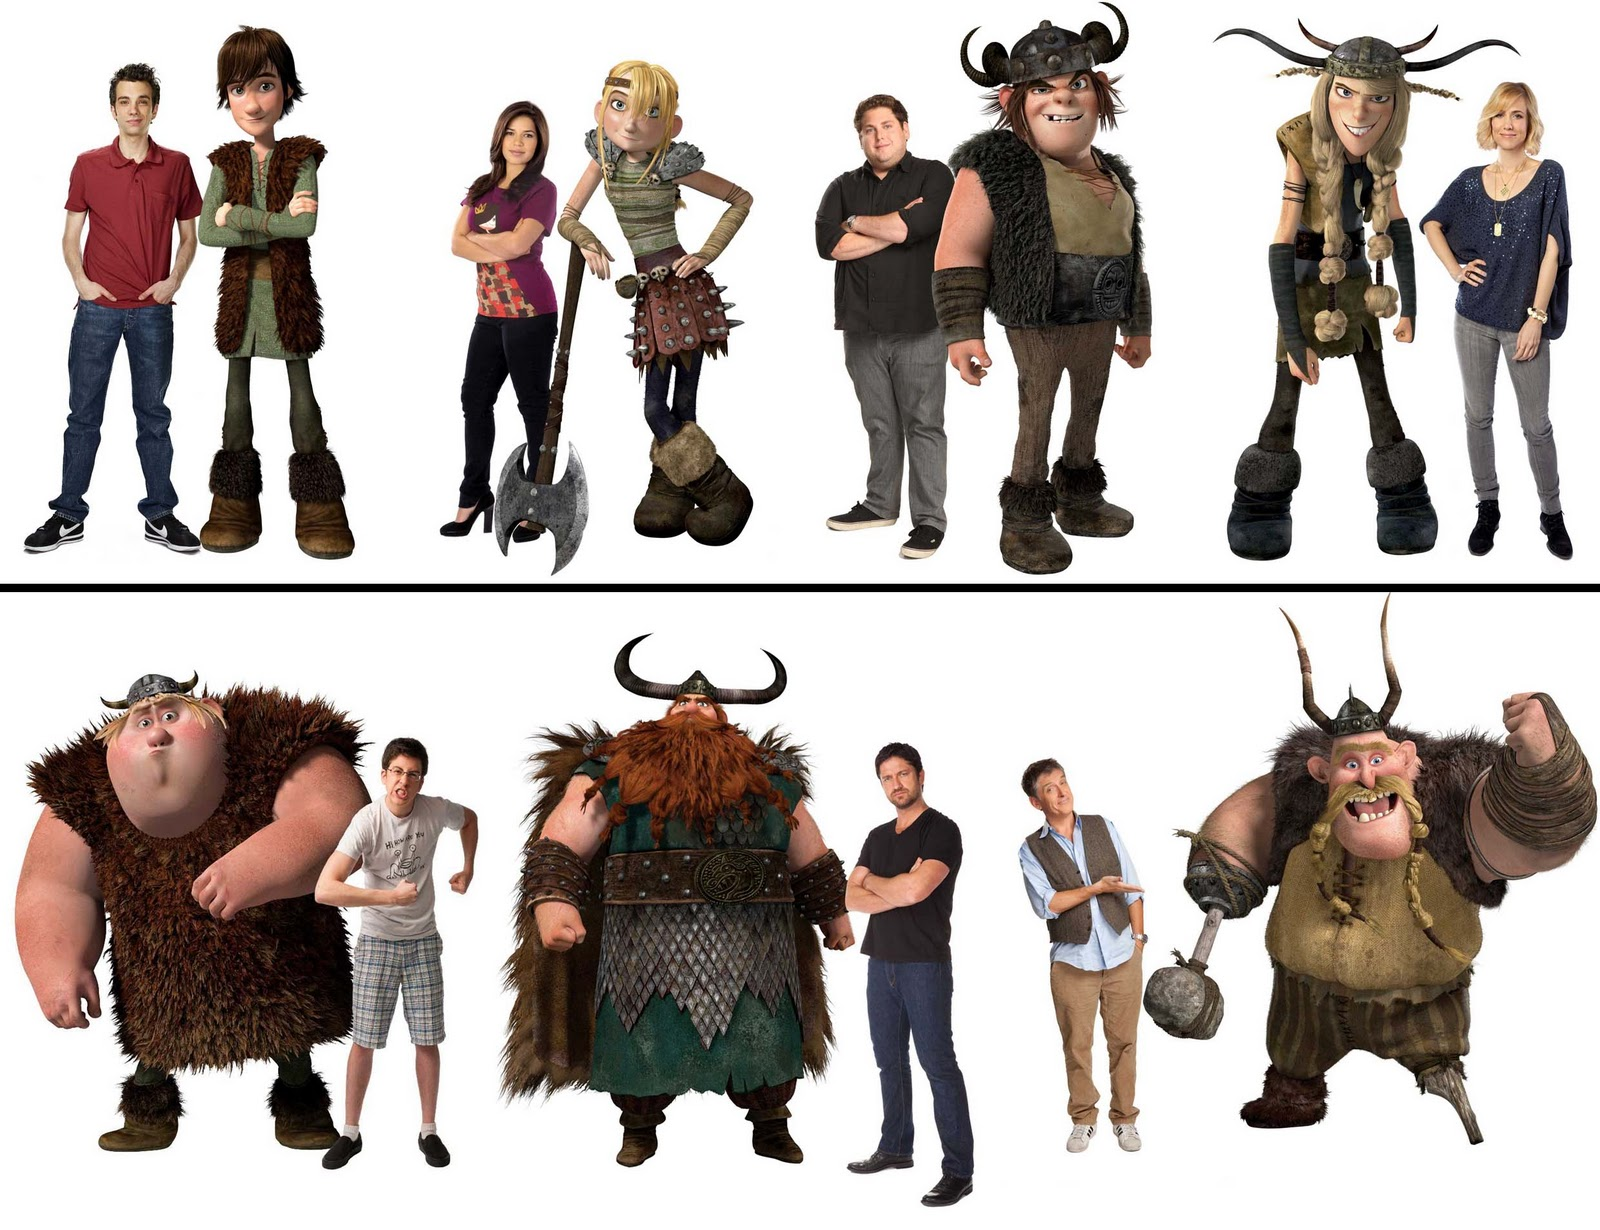 Character Design How To Train Your Dragon 2 : How to train your dragon characters list